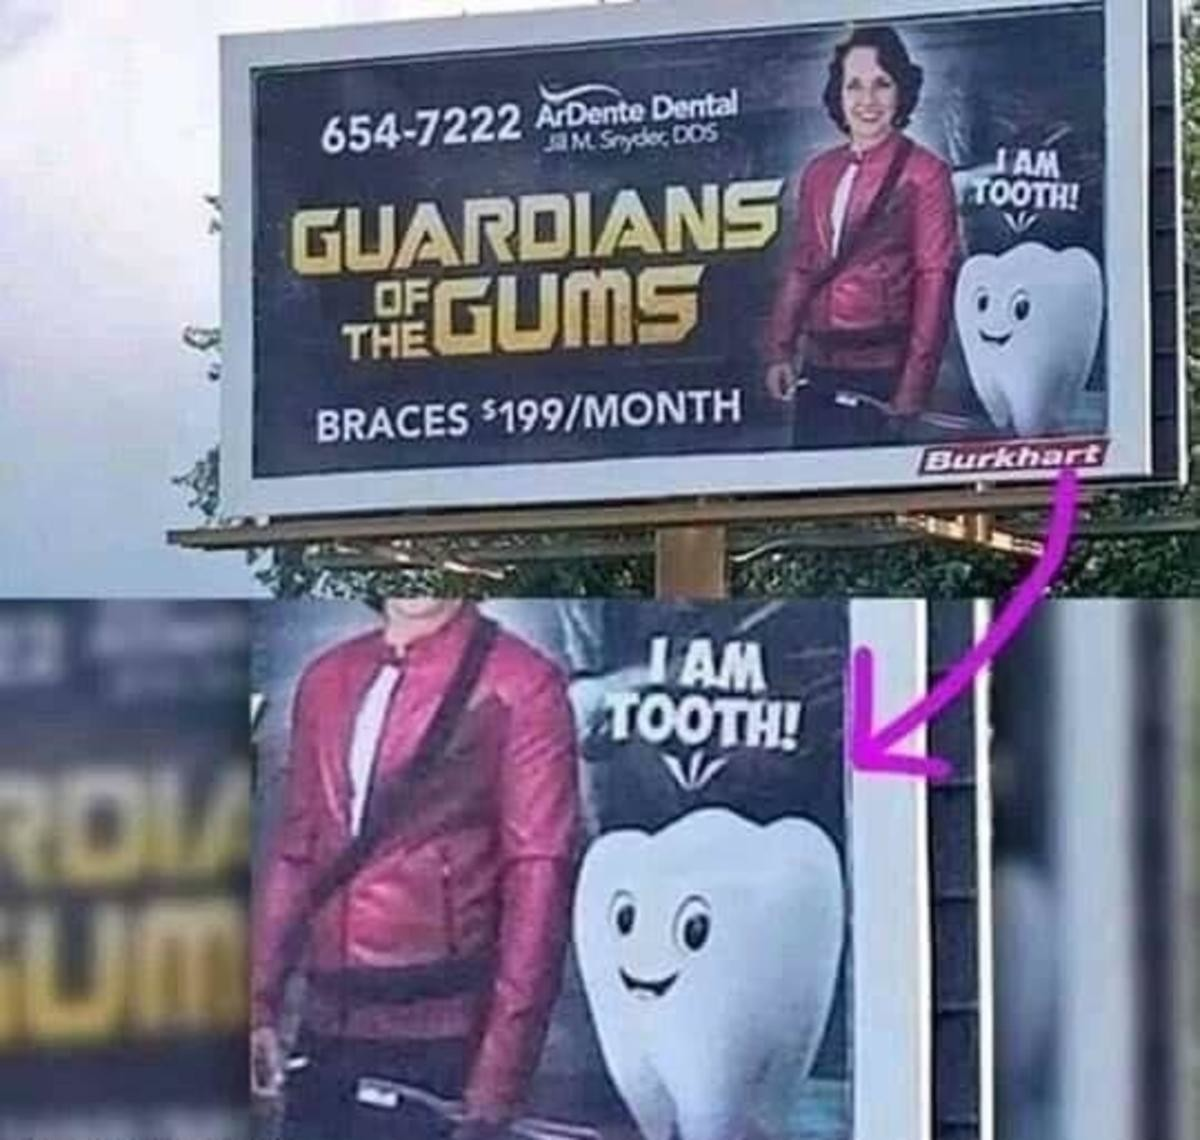 Toof. .. You have to rent your braces?